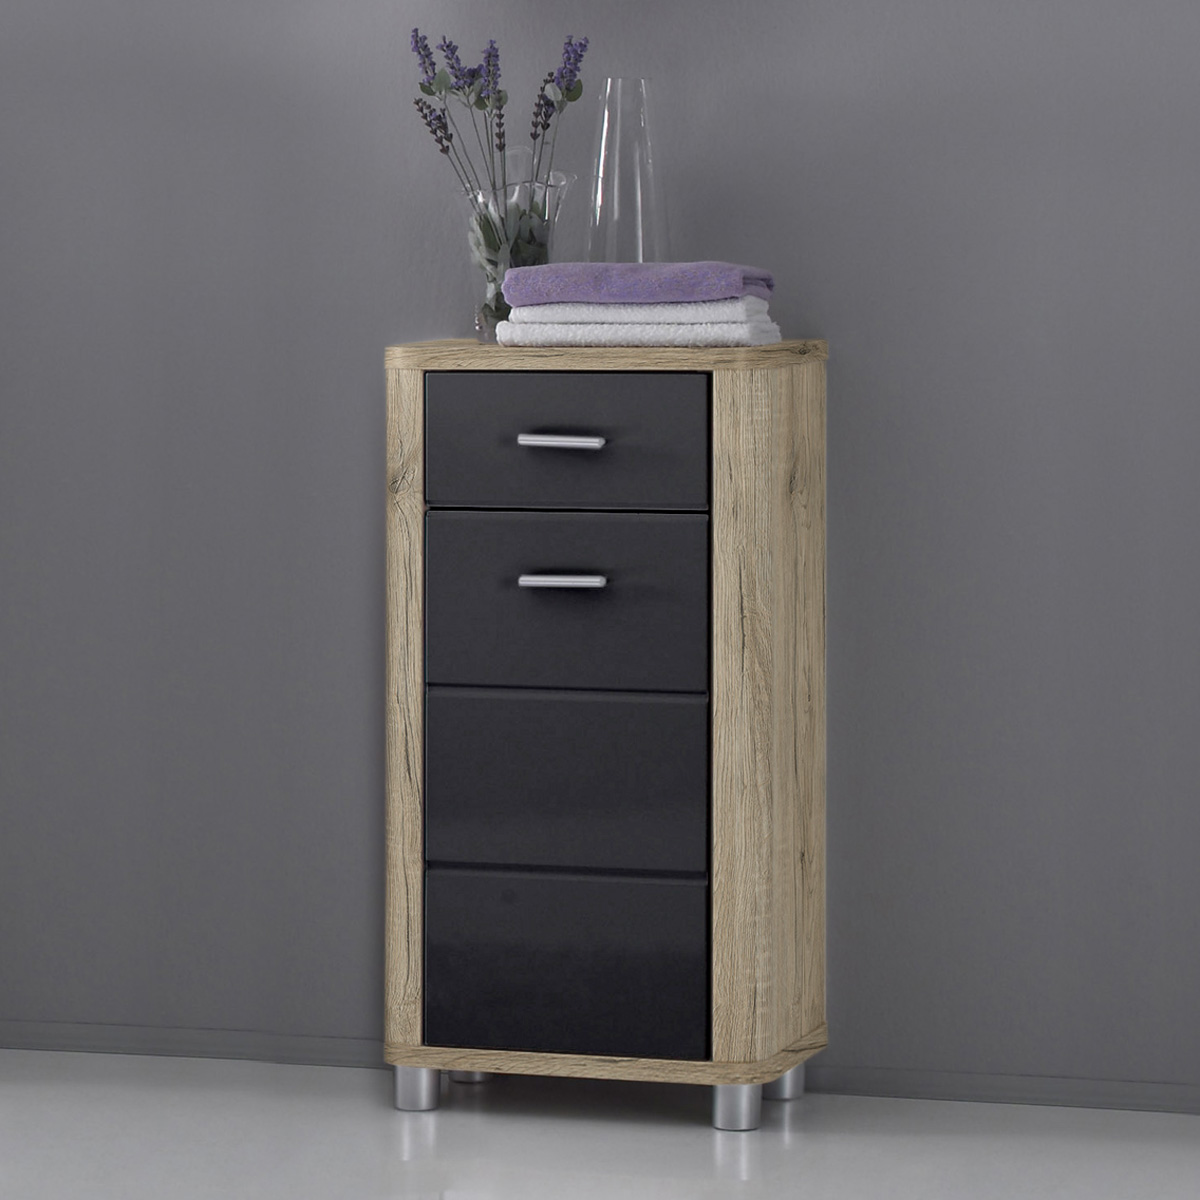 badezimmer vital bad kommode hochschrank unterschrank spiegel san remo eiche ebay. Black Bedroom Furniture Sets. Home Design Ideas